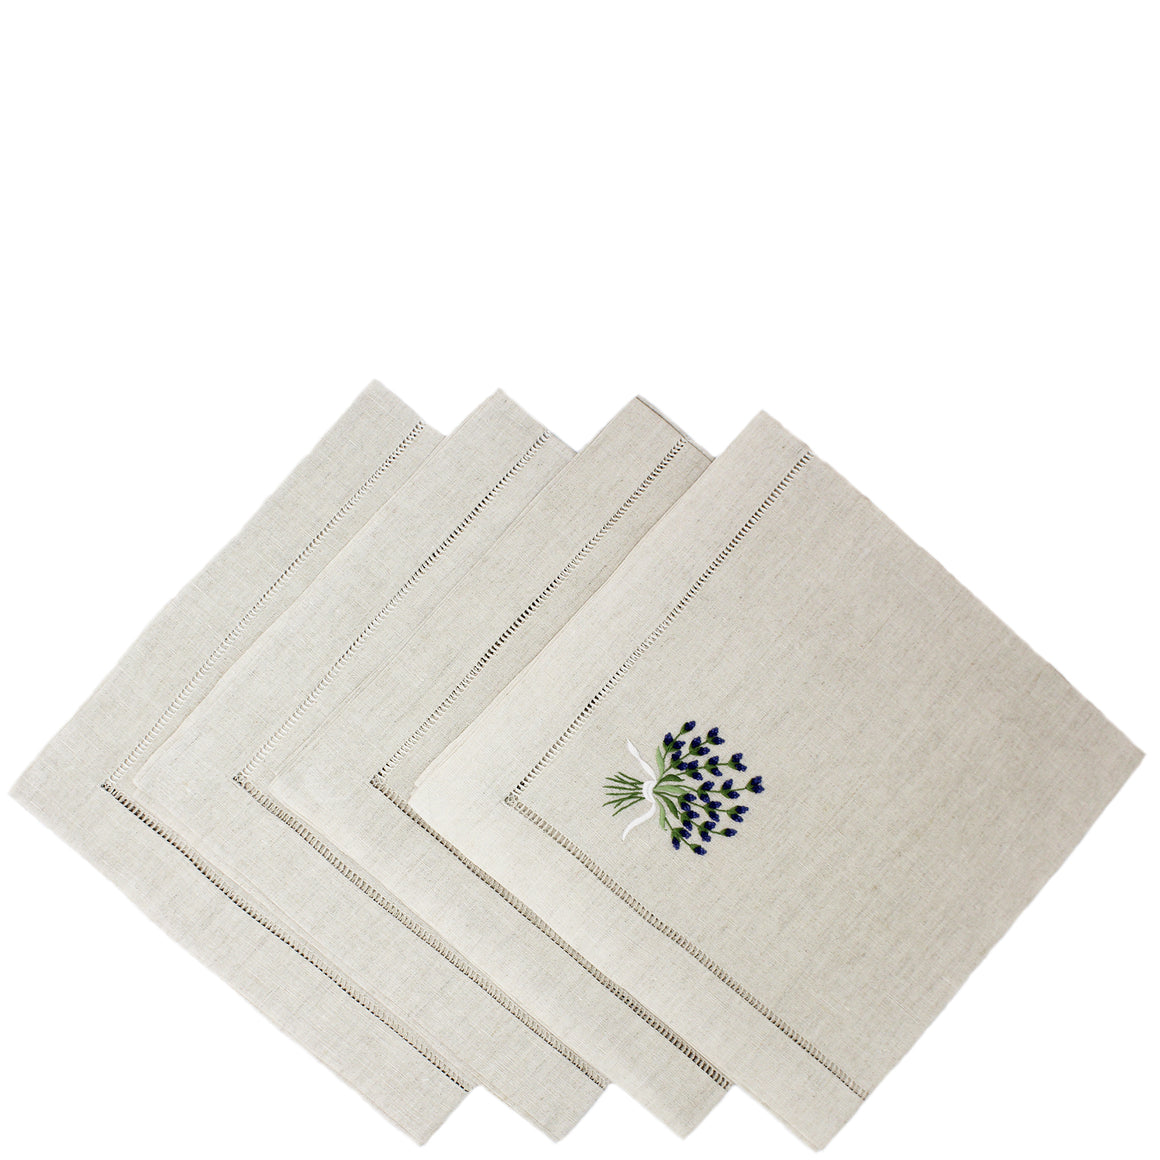 hand embroidered linen napkins - lavender design